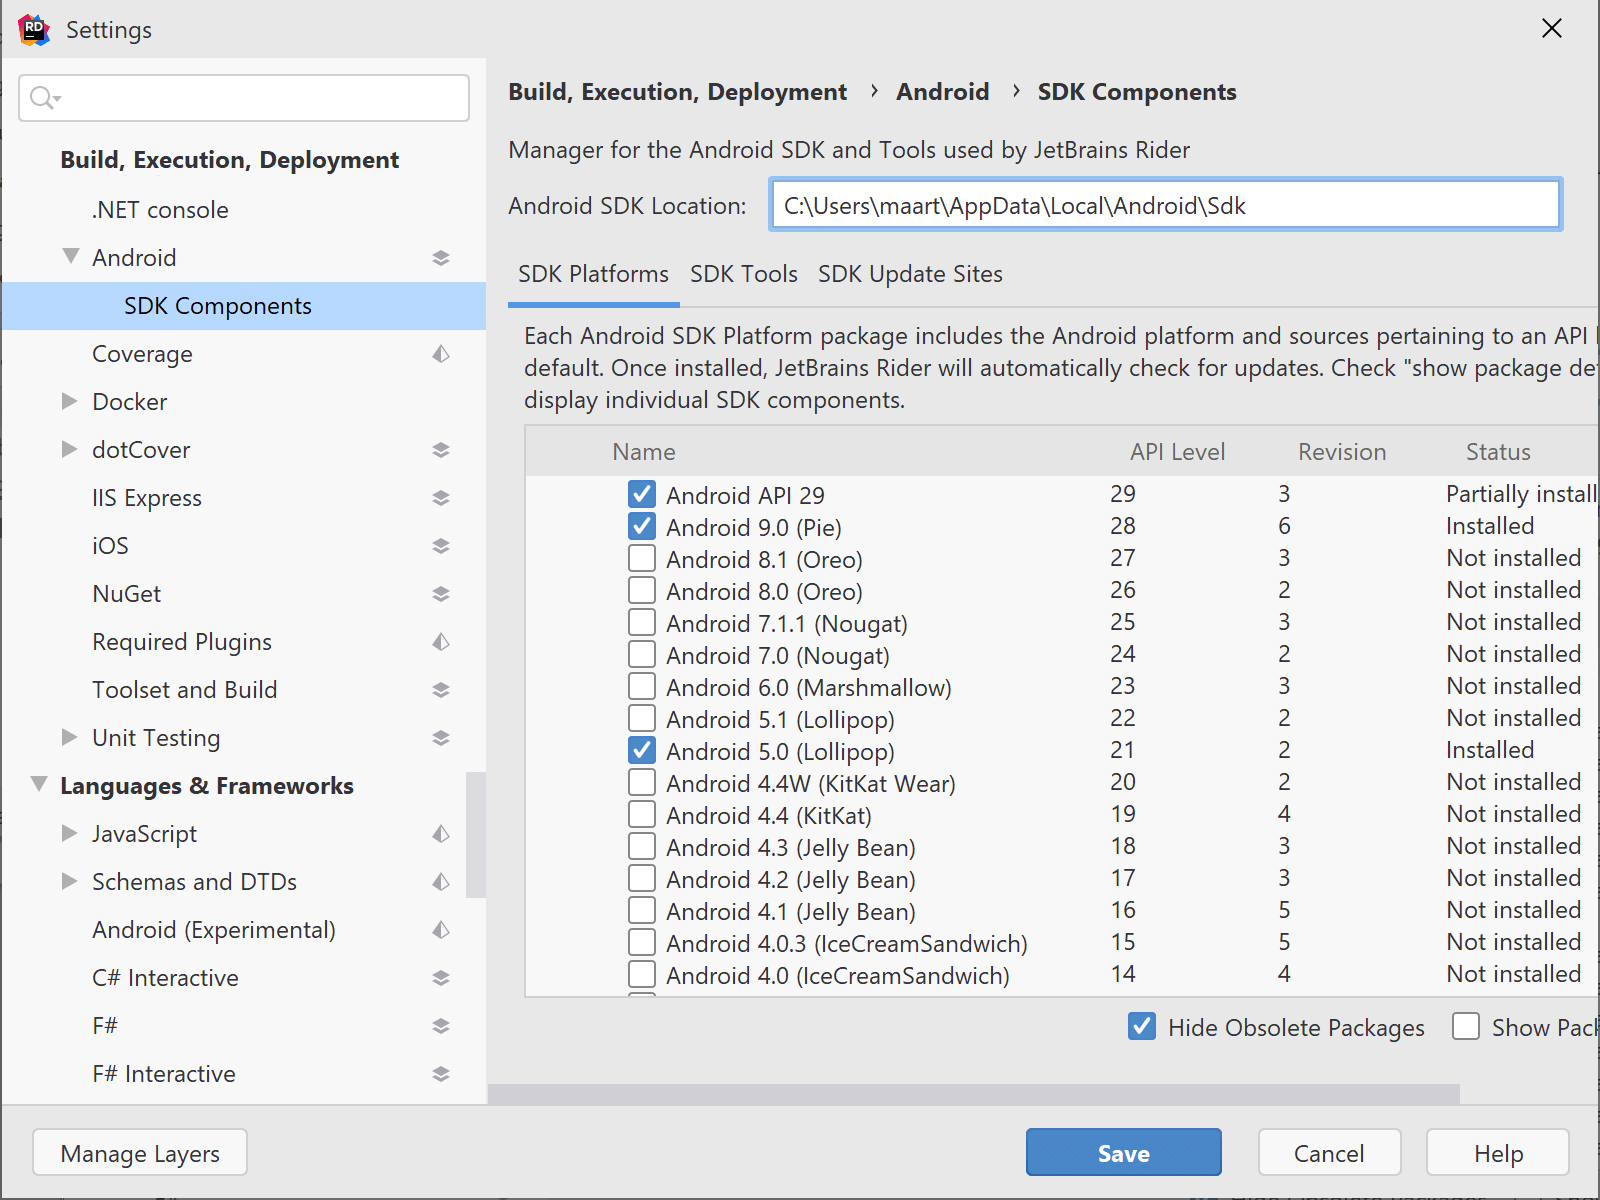 Manage Android SDK and SDK tools